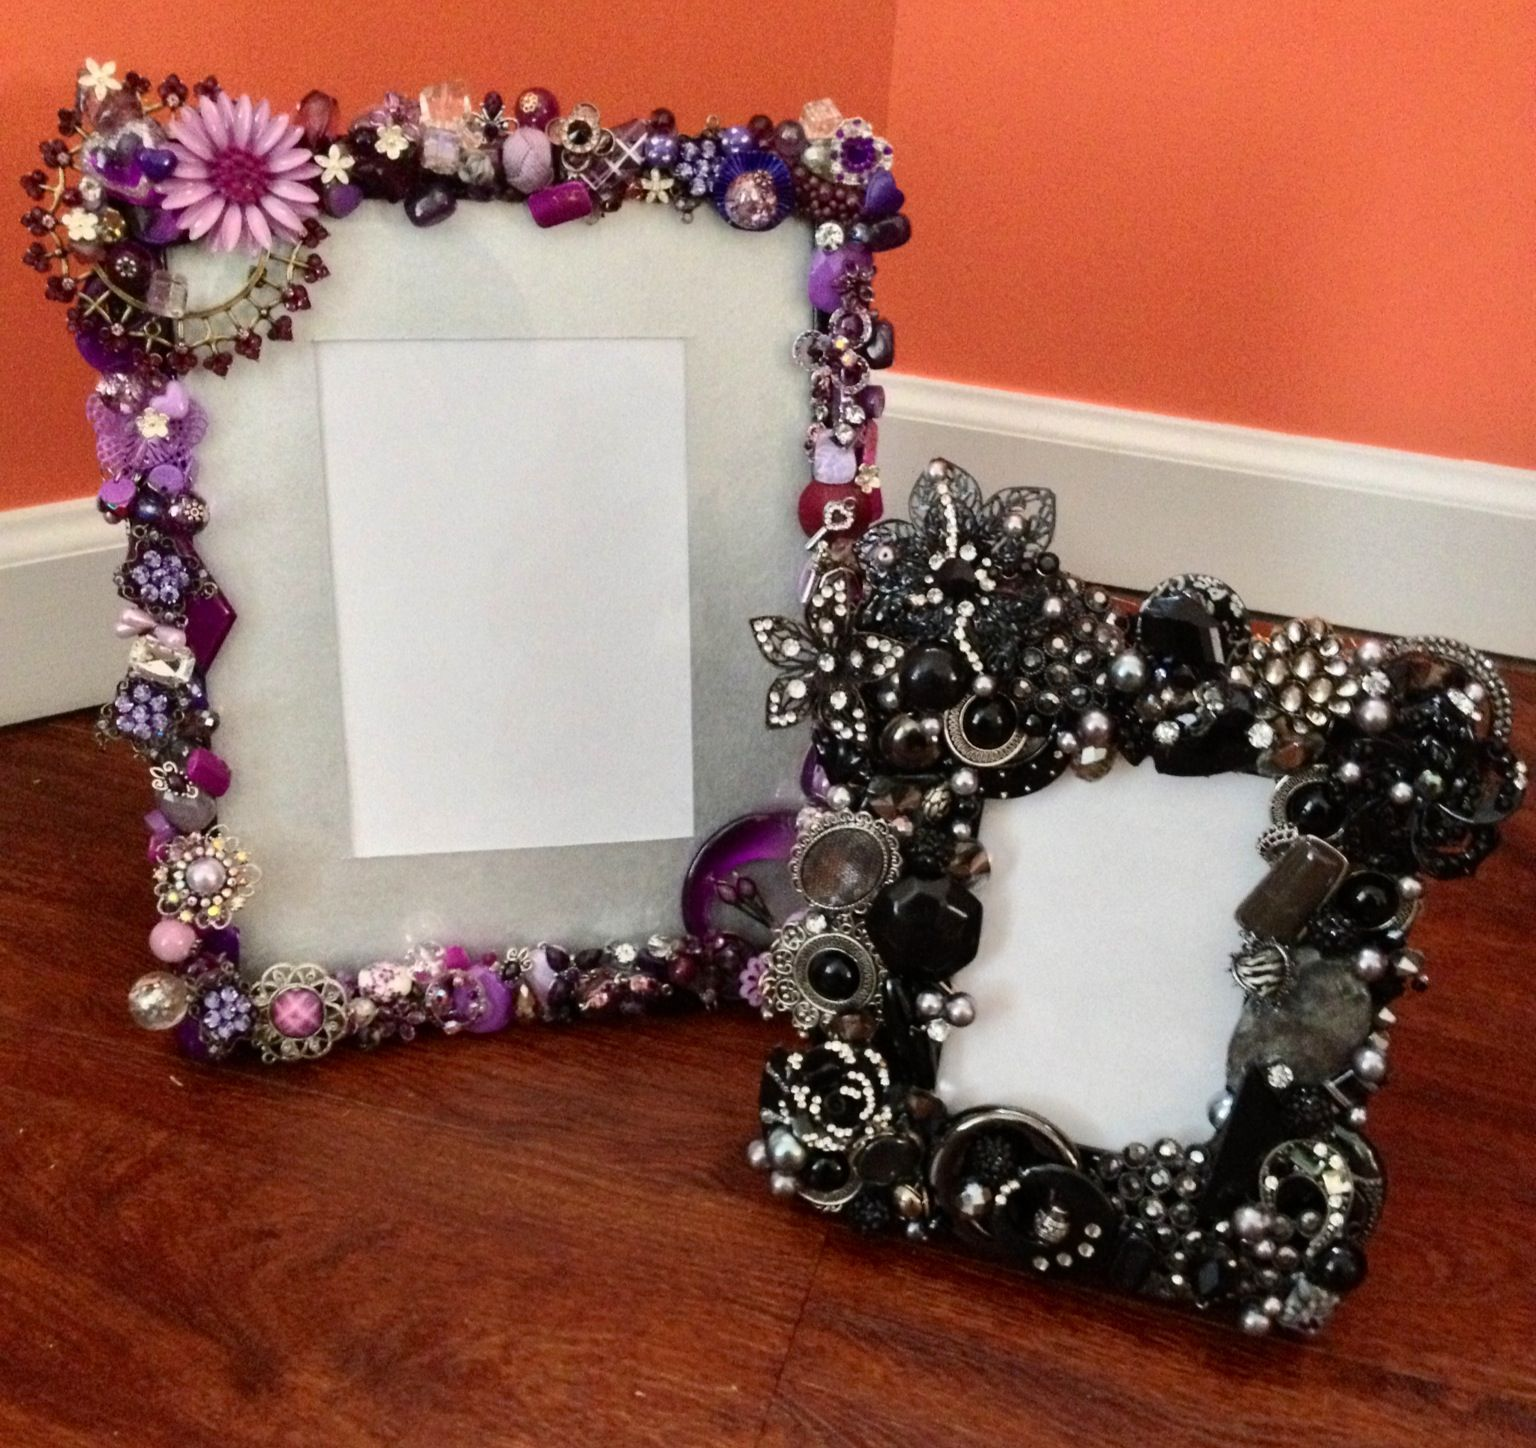 Handmade Picture Frames And Mirrors Of All Shapes And Sizes Using